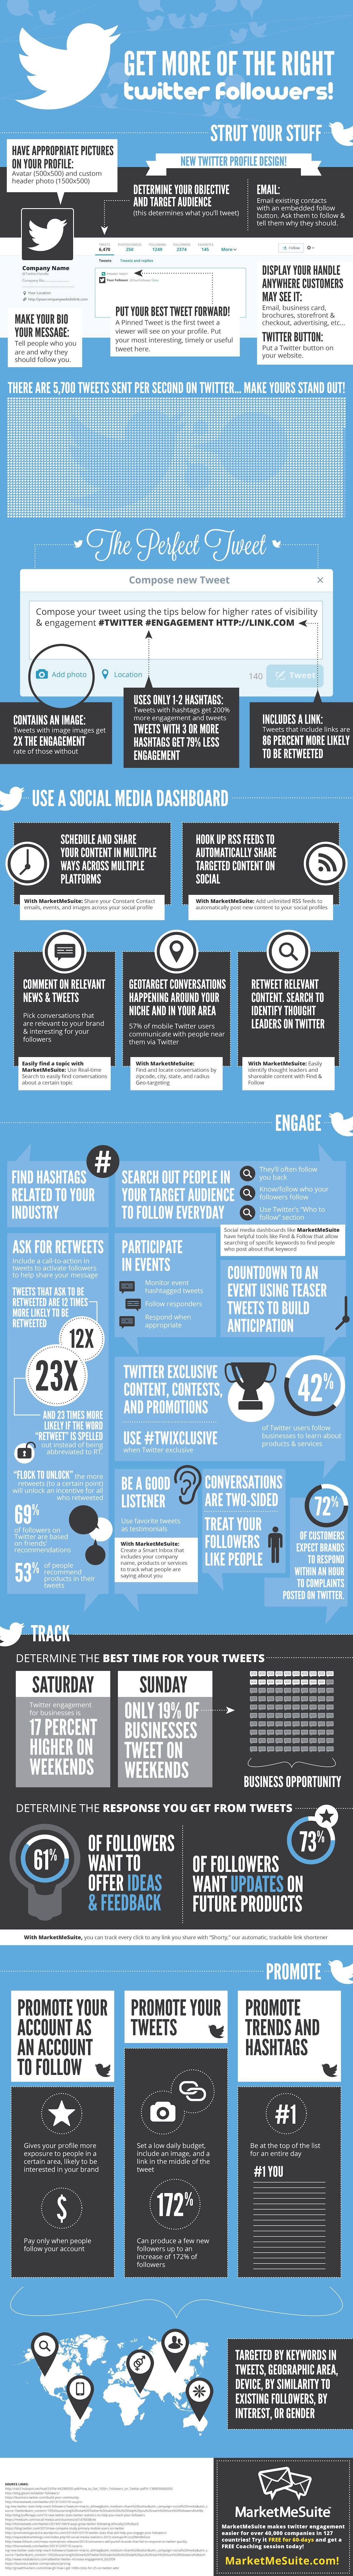 From @MarketMeSuite - how to get more of the right sort of #Twitter follower - #infographic #socialmedia